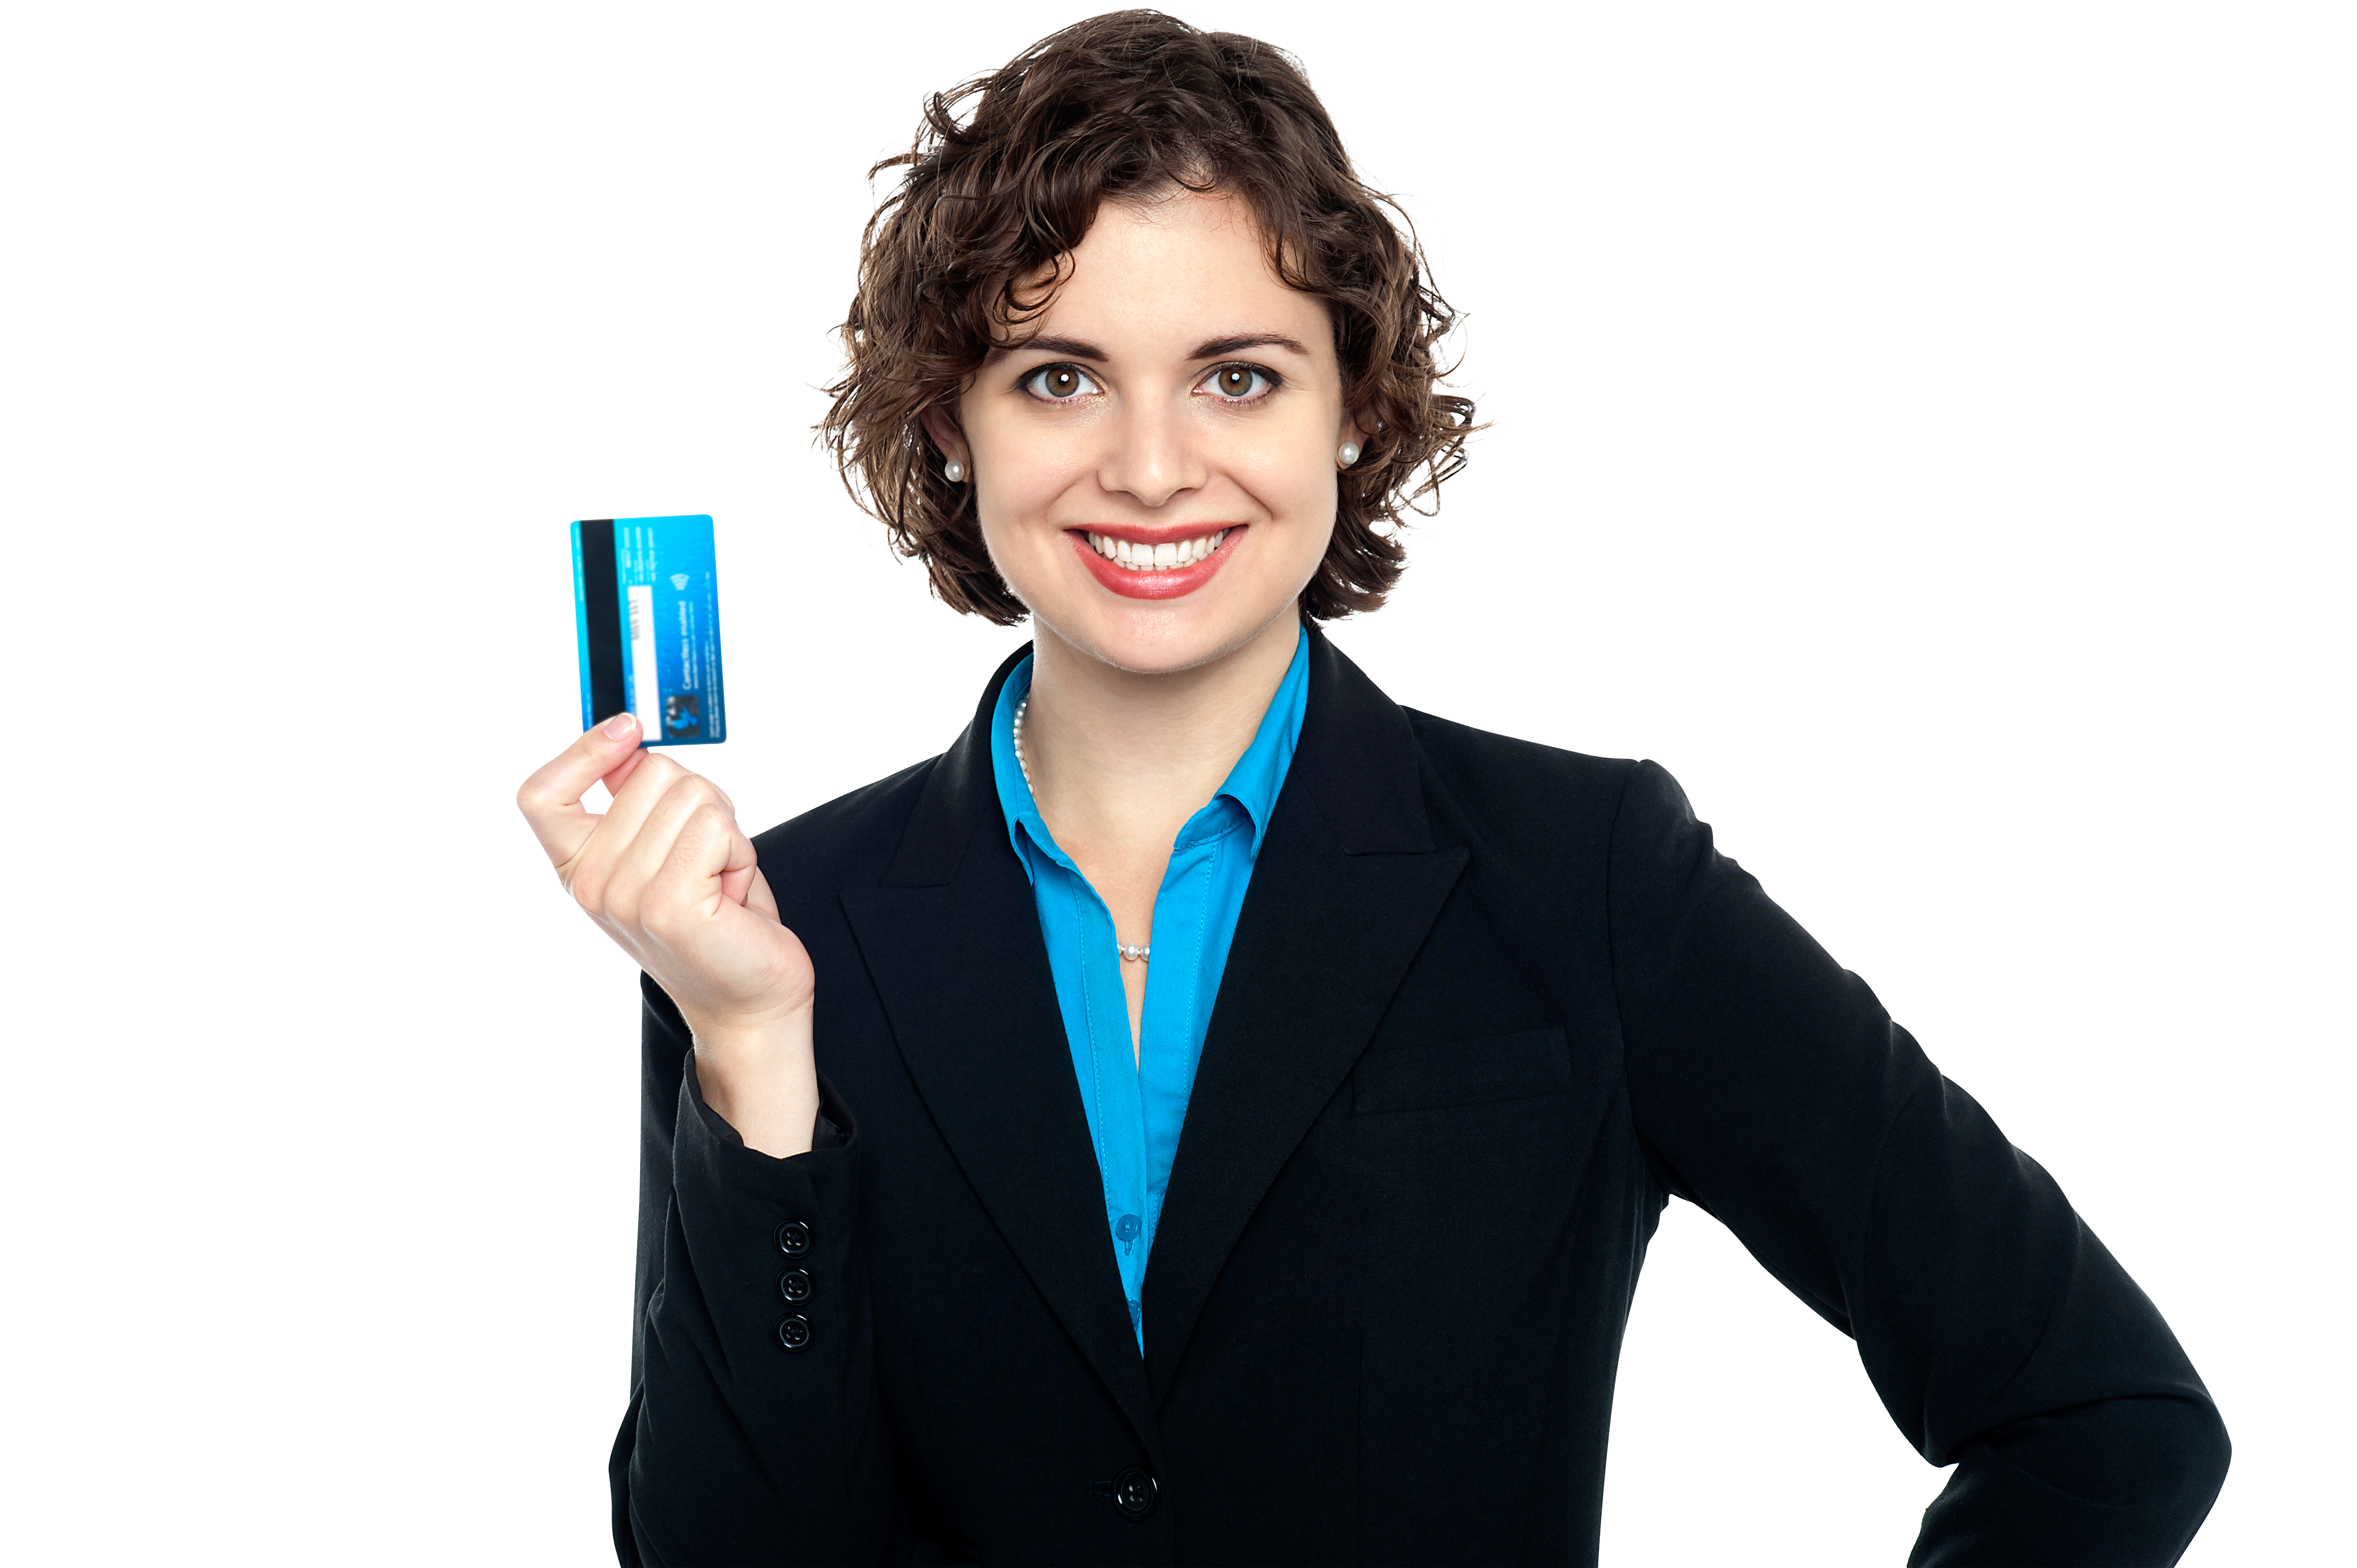 Women Holding Credit Card PNG Image